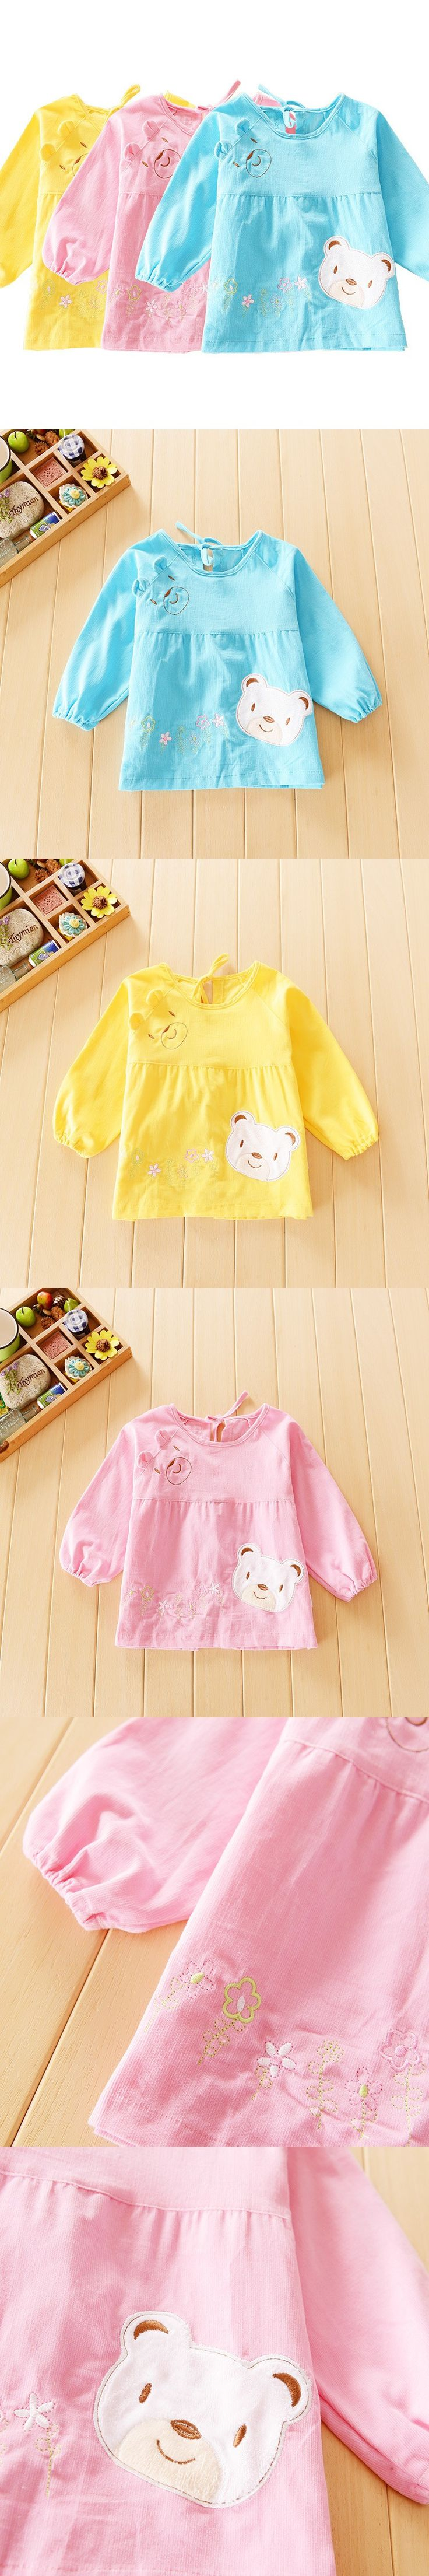 New Toddler Coverall Feeding Baby Long Sleeve Bib Apron With Cute Animals And Waterproof Backing Saliva Burp Apron Overclothes $4.99